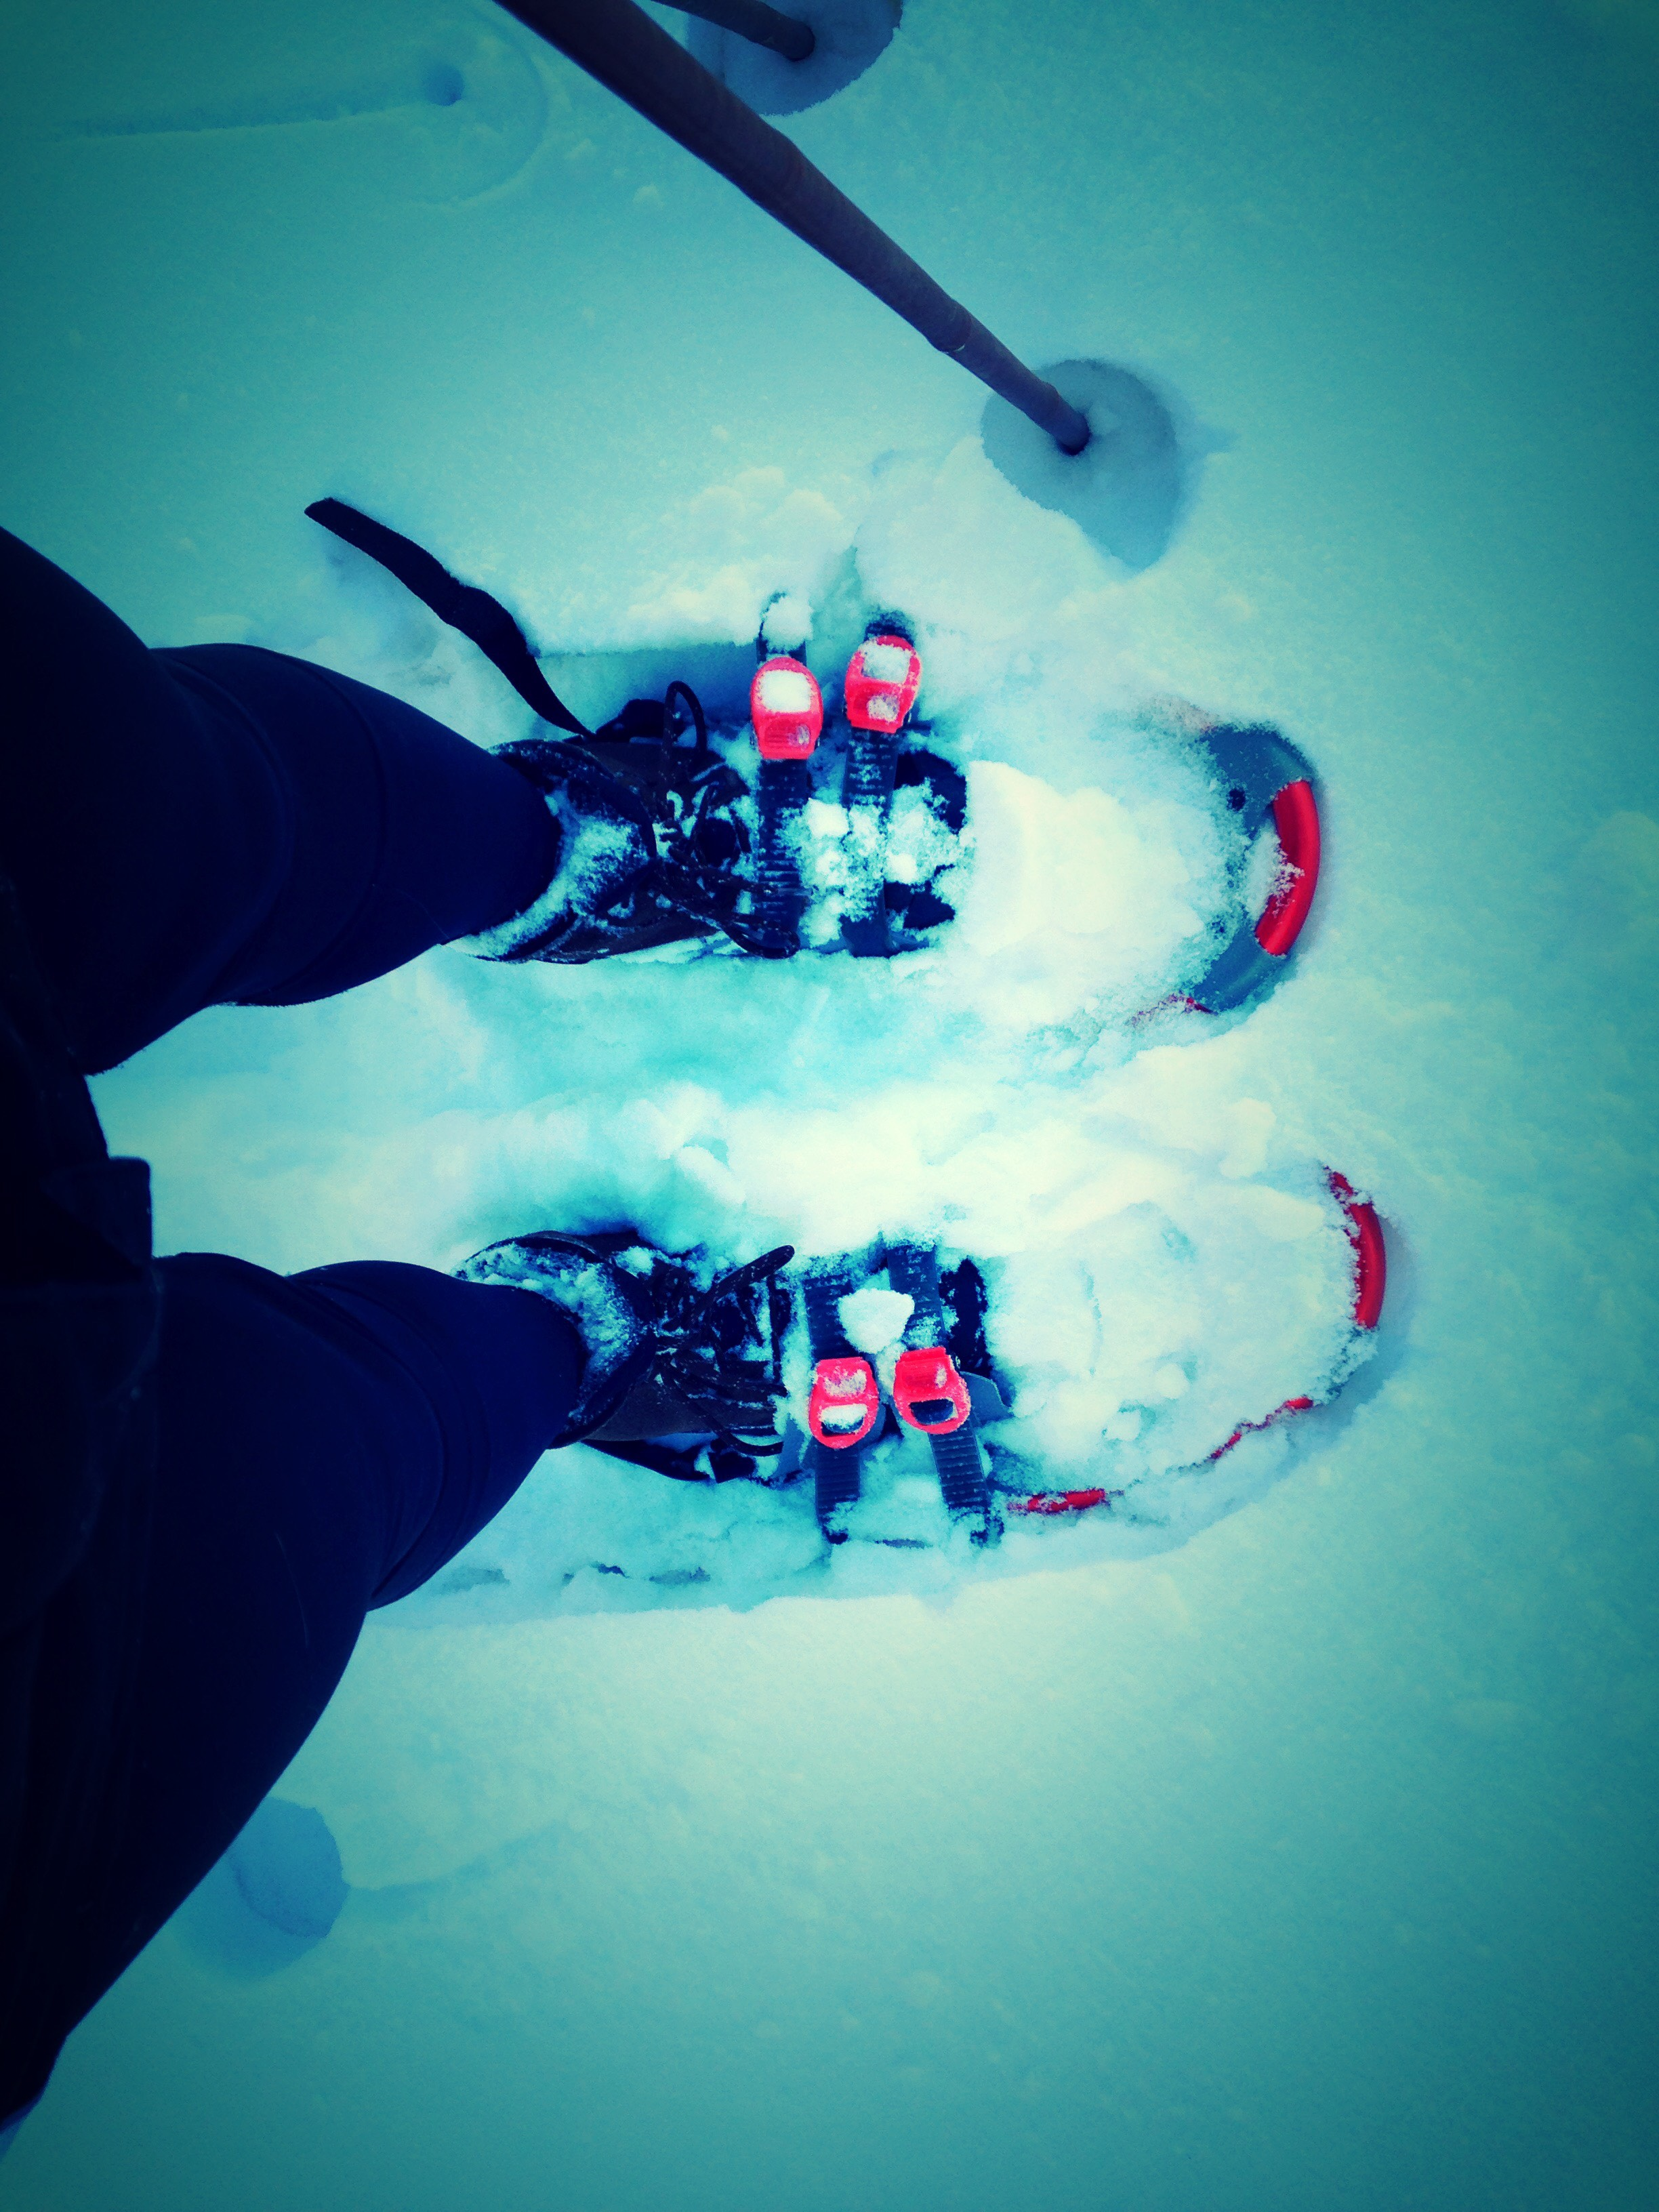 Update on Active Commuting in Omaha! - Probably not going to use the snowshoes to commute!!